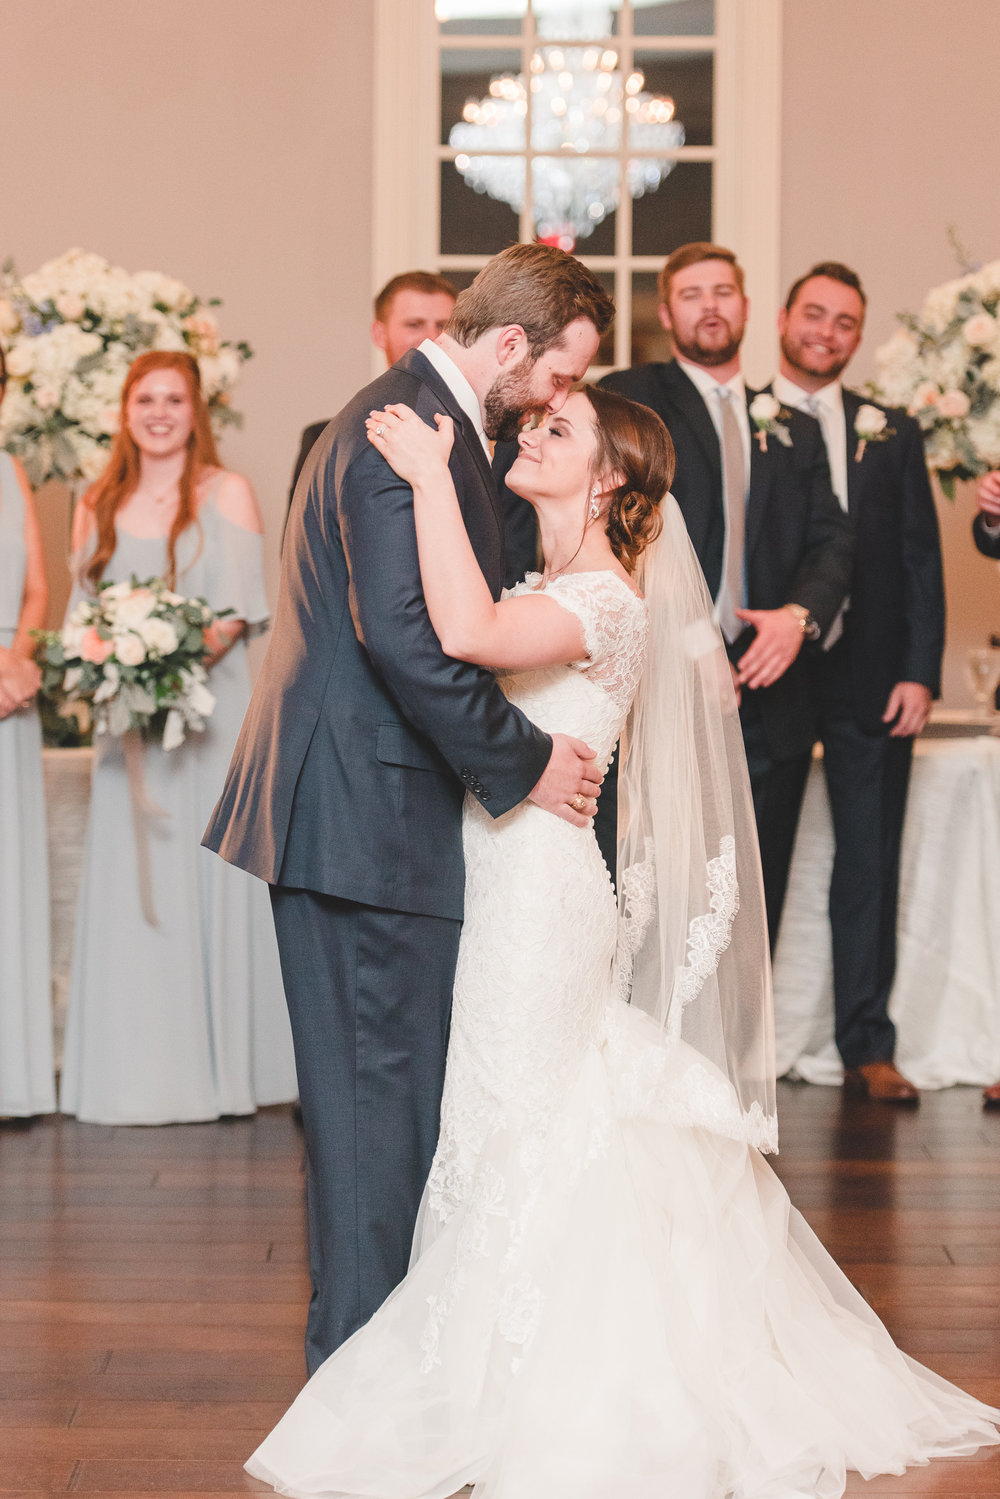 Bride and Groom First Dance | Rose Gold and Dusty Blue Winter Wedding in Dallas, TX